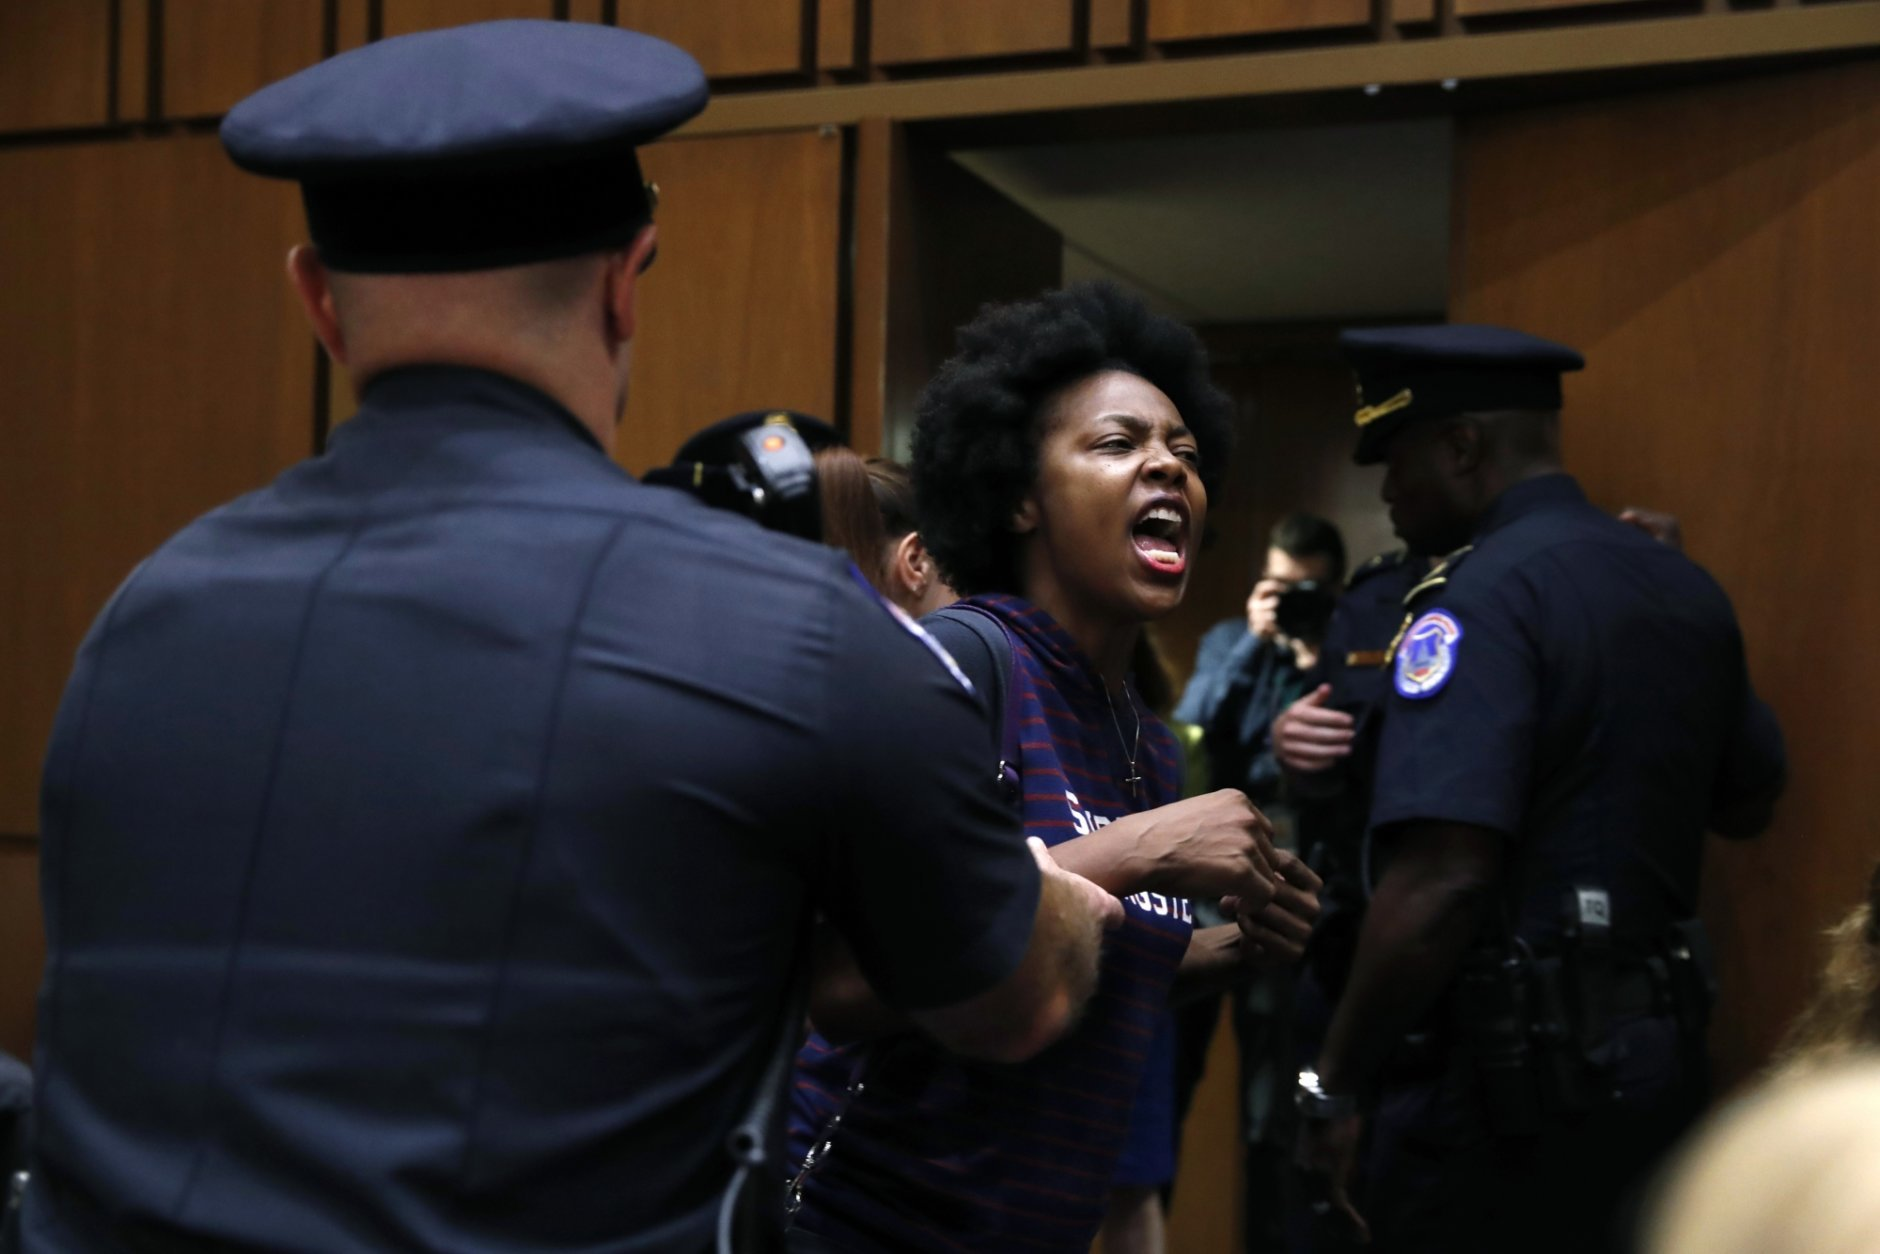 A protester against Supreme Court nominee Brett Kavanaugh is removed from his Senate Judiciary Committee confirmation hearing, on Capitol Hill, Tuesday, Sept. 4, 2018, in Washington. (AP Photo/Jacquelyn Martin)